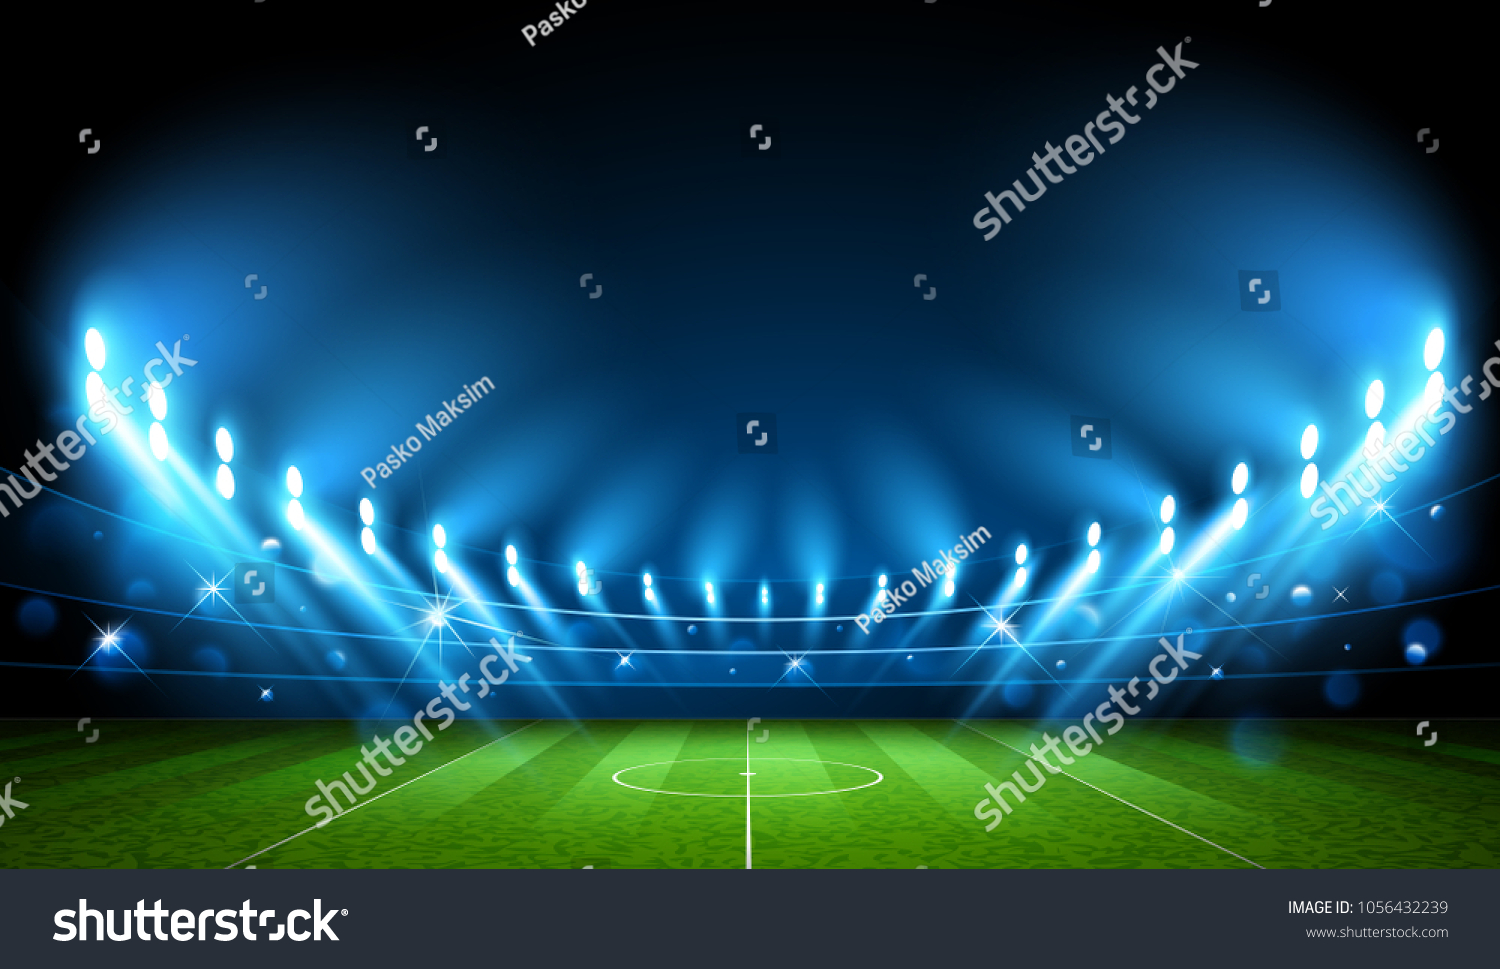 Public Buildings. Football Arena. World Cup Vector illustration #1056432239